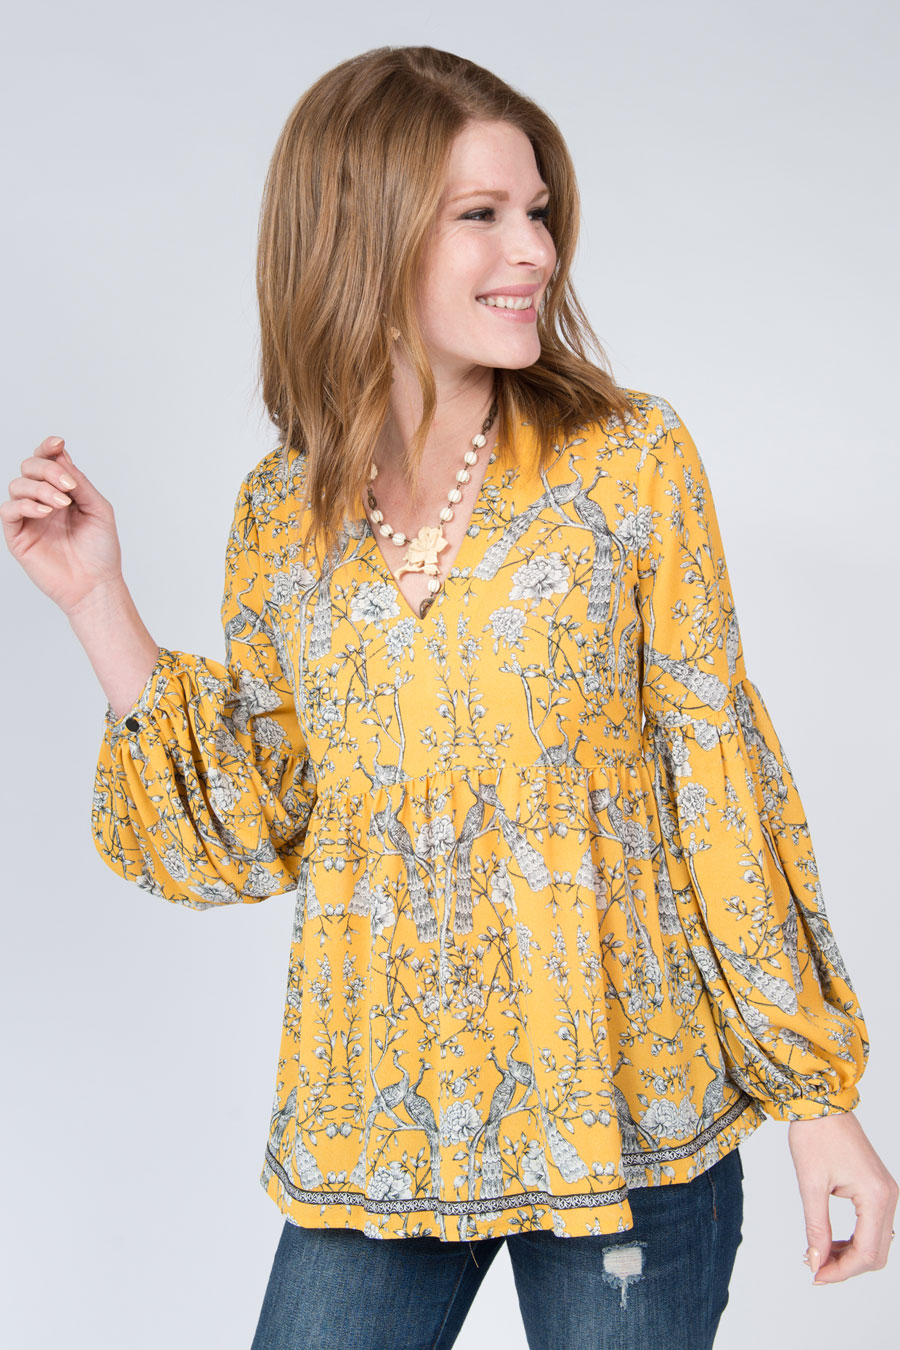 Ivy-Jane-Top-Style-621222-Fall-1-2018-v-